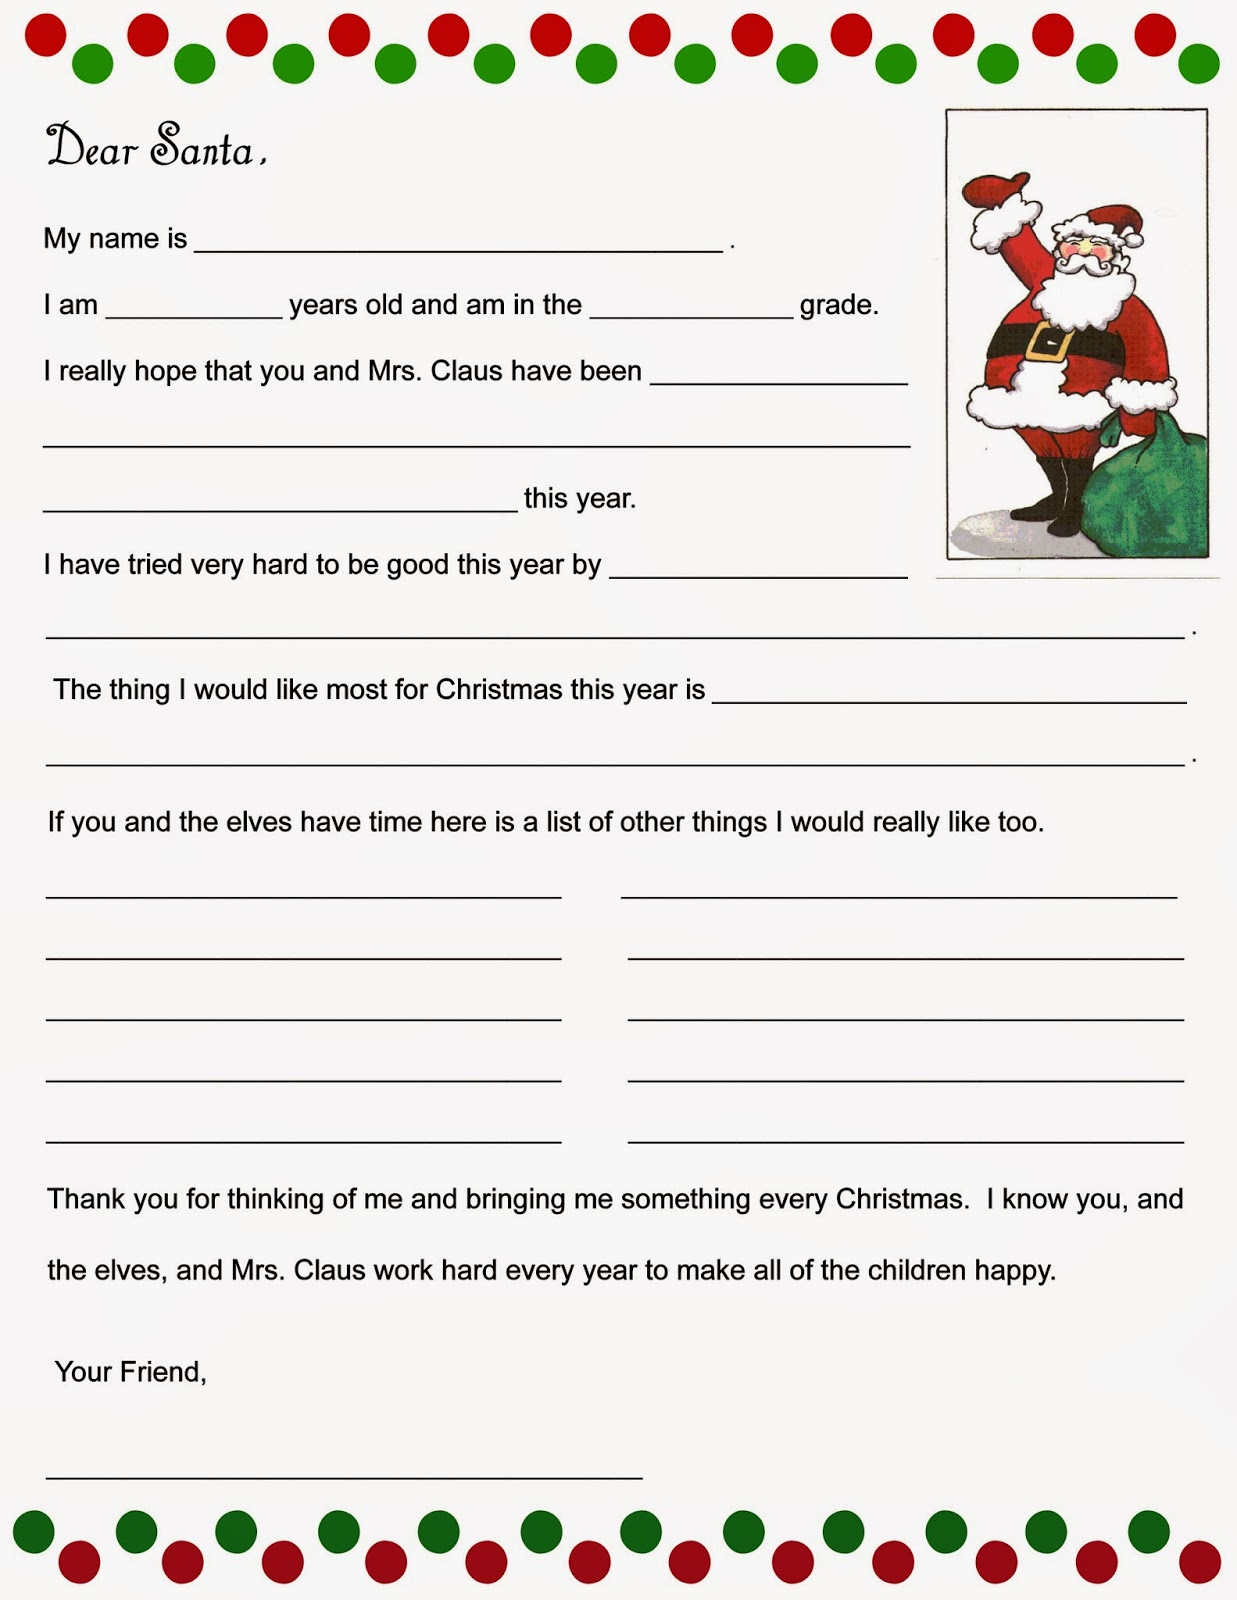 Simplicity image pertaining to printable secret santa wish list